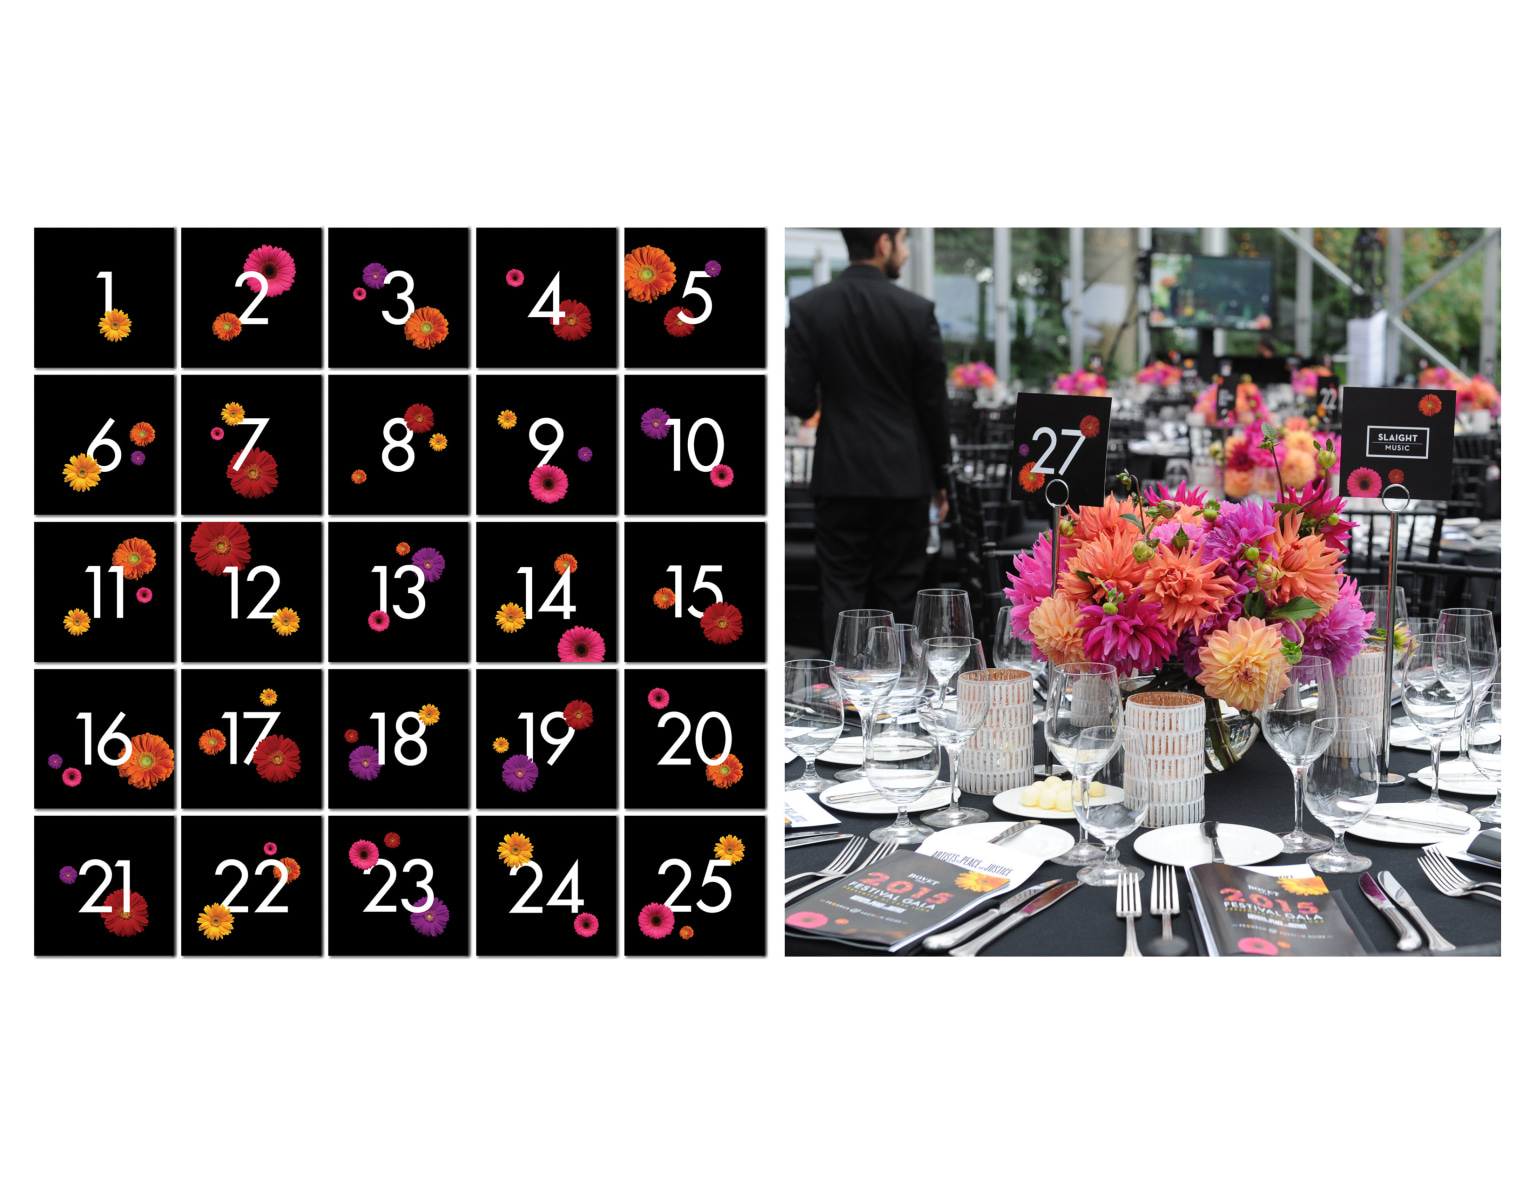 2015 Festival Gala | Event Branding and Collaterals